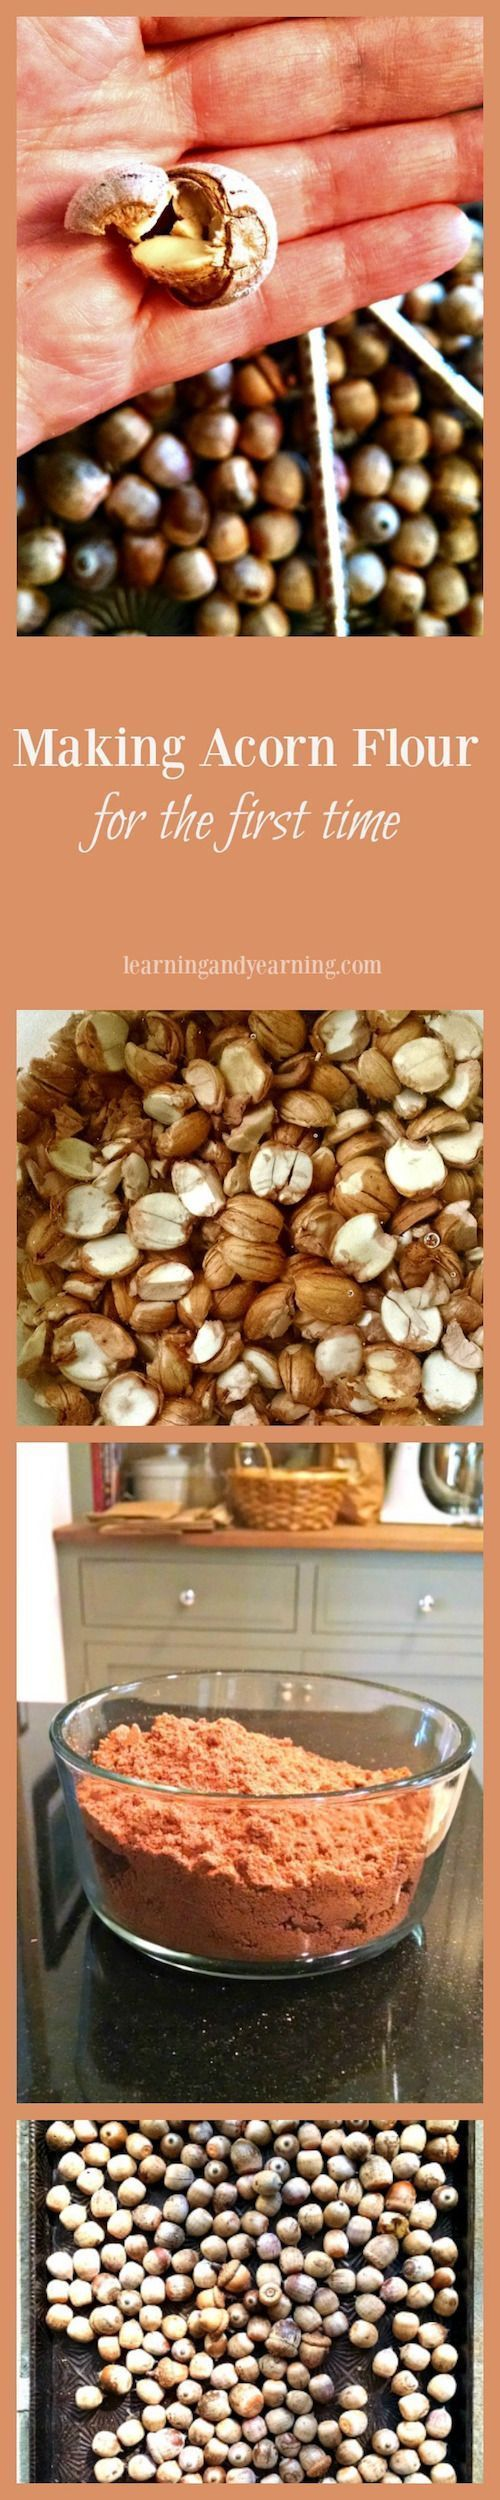 Acorns, like all nuts, are nutritious. Not only that, I've discovered that they are delicious. Here's how I turned a few quarts of them into acorn flour.